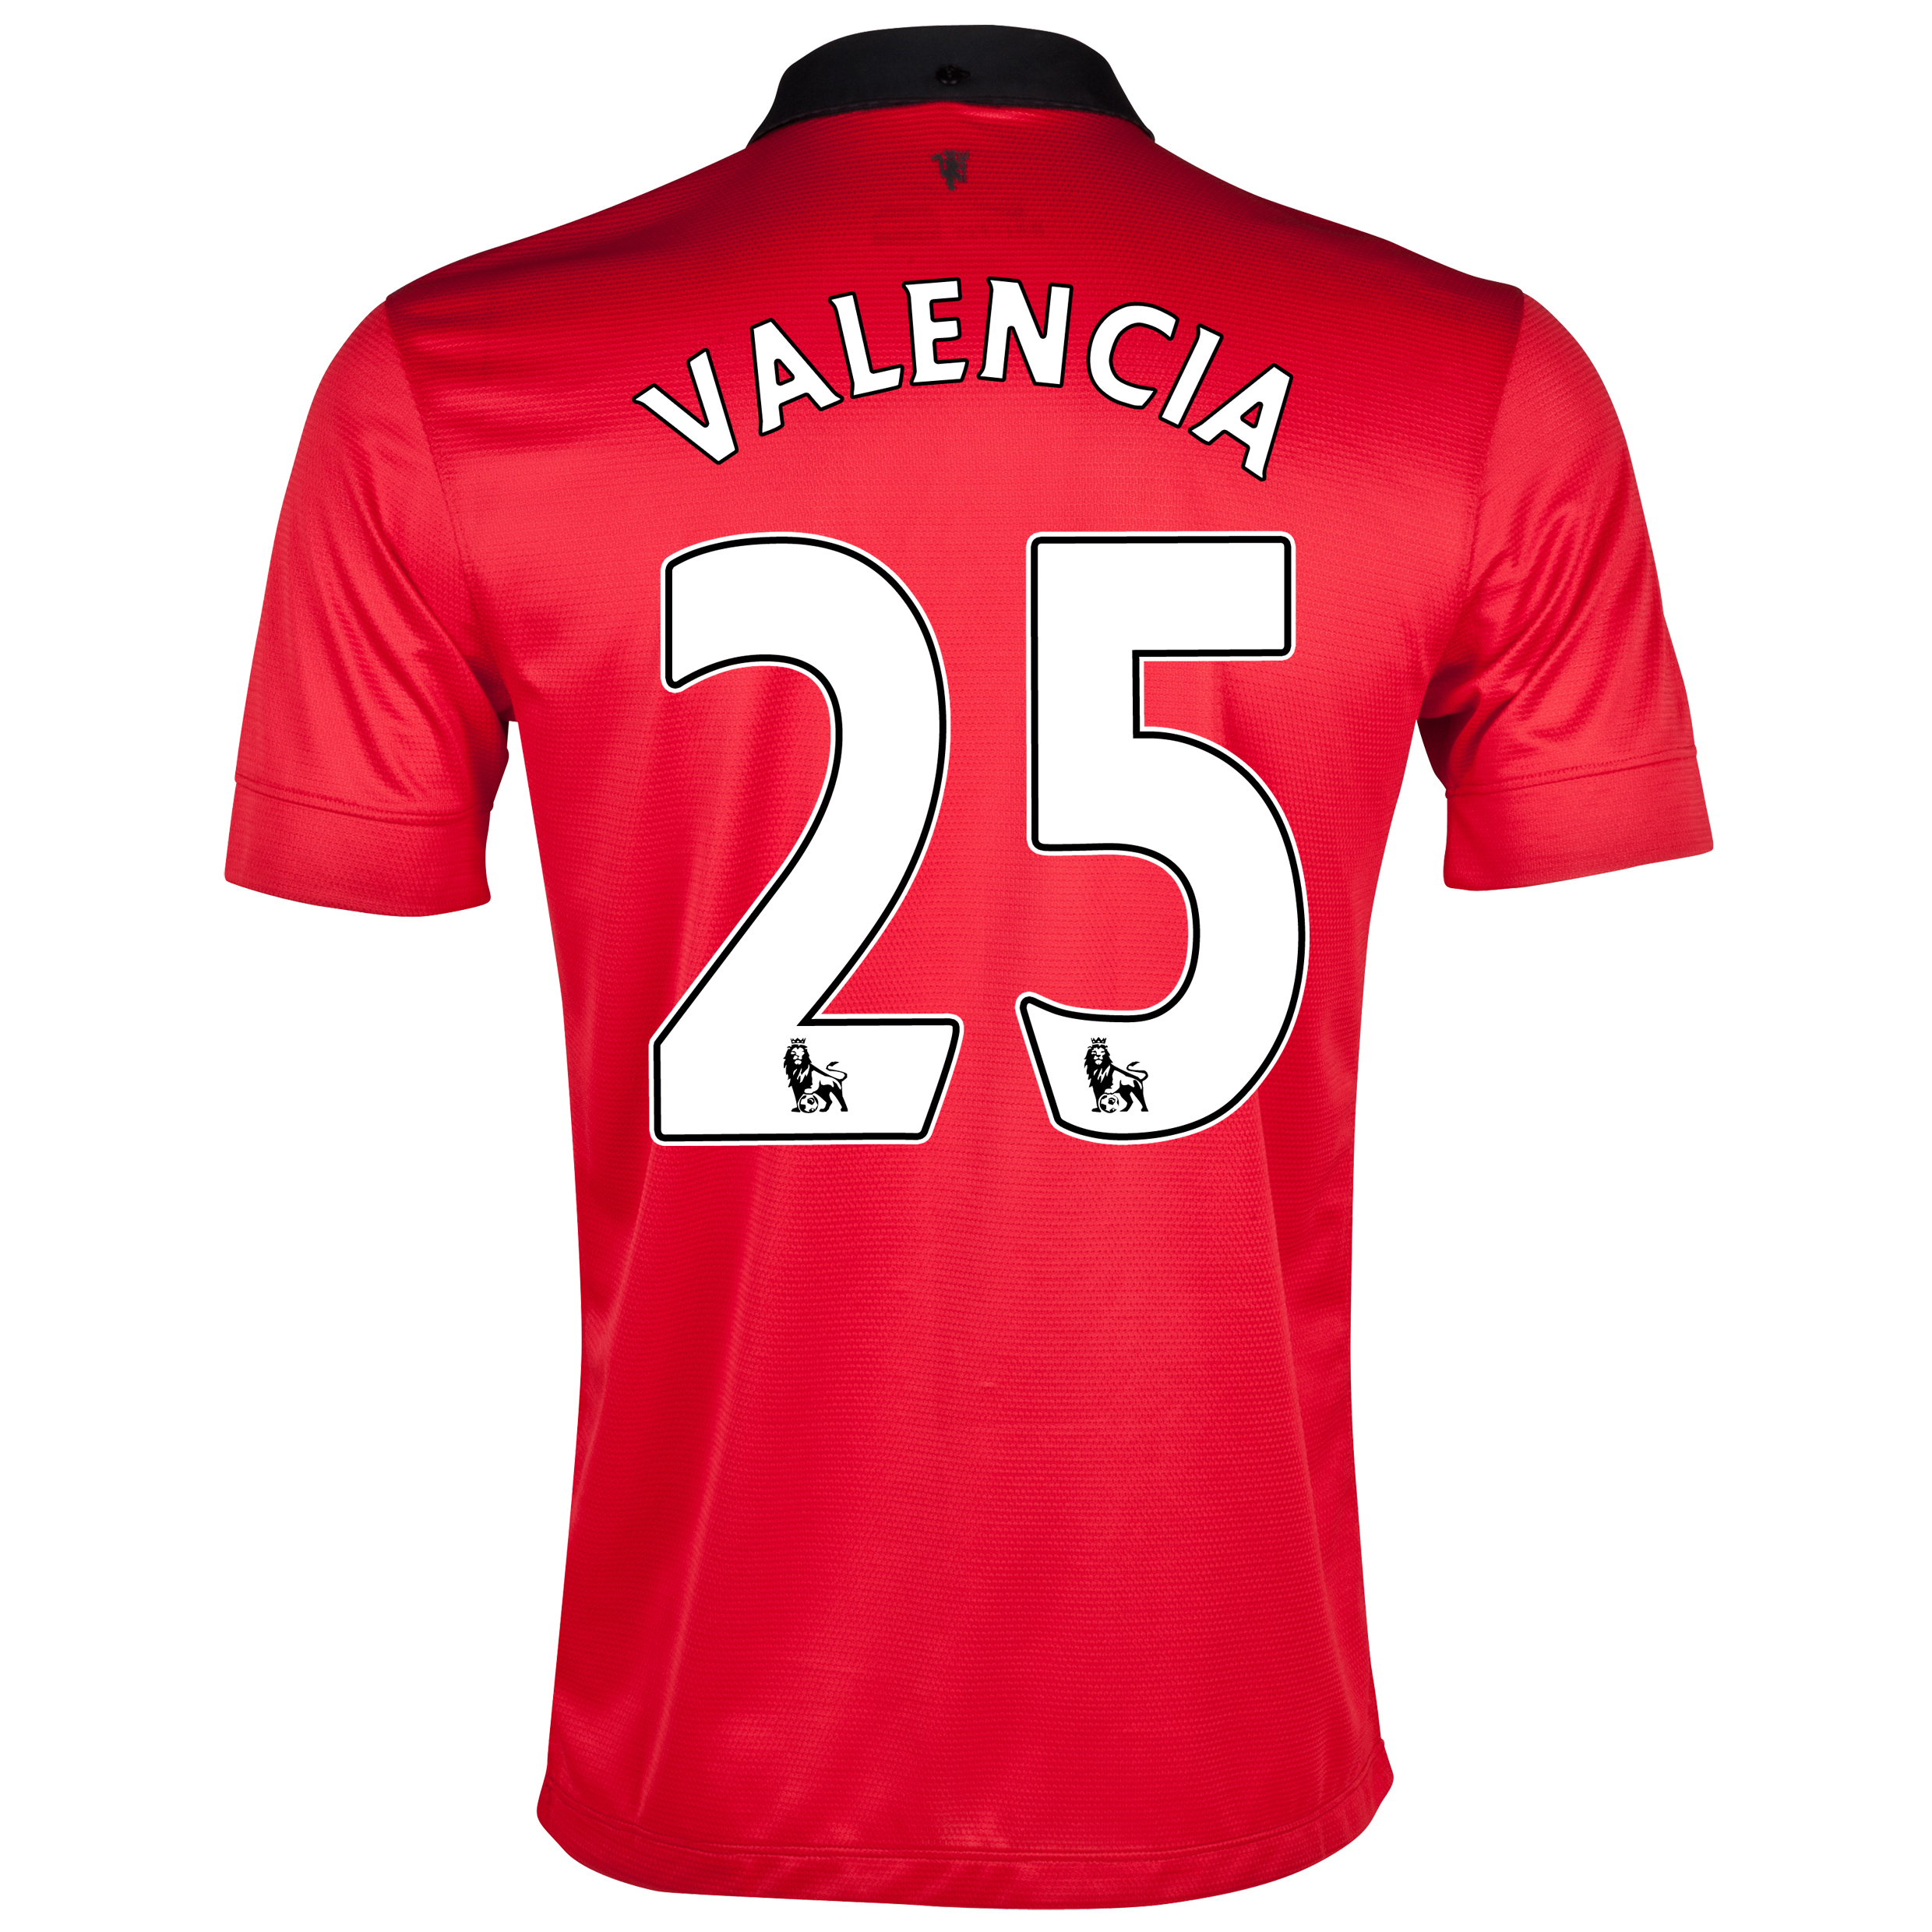 Manchester United Home Shirt 2013/14 with Valencia 25 printing